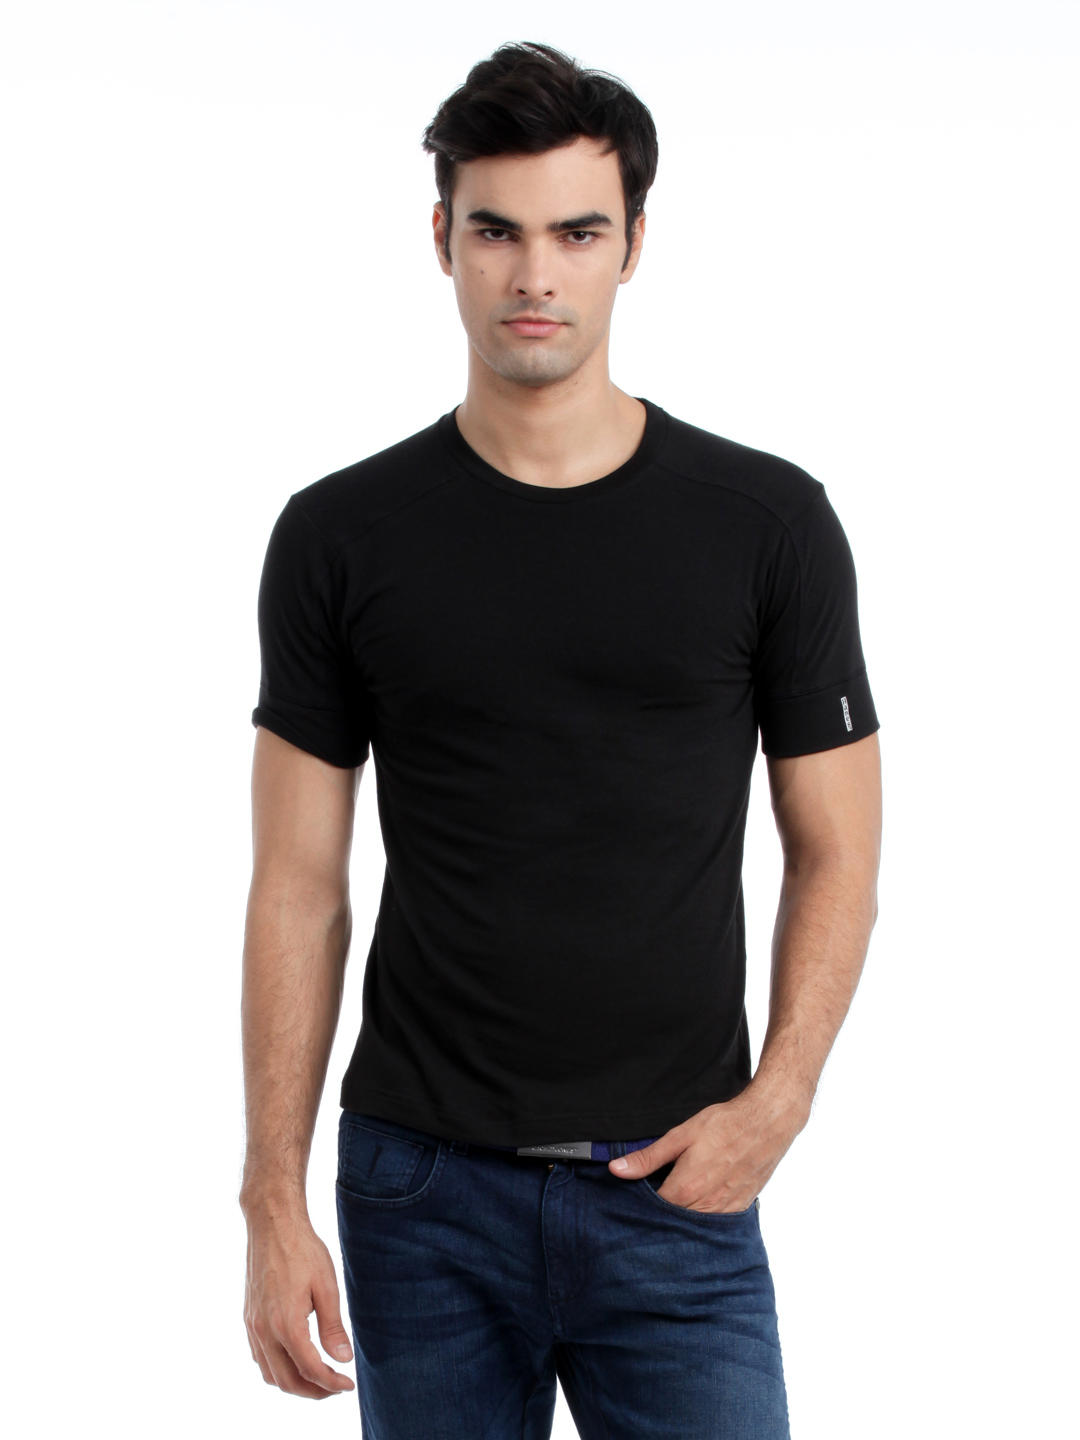 Hanes Men Black Duo Dry Body Fit Crew T-shirt